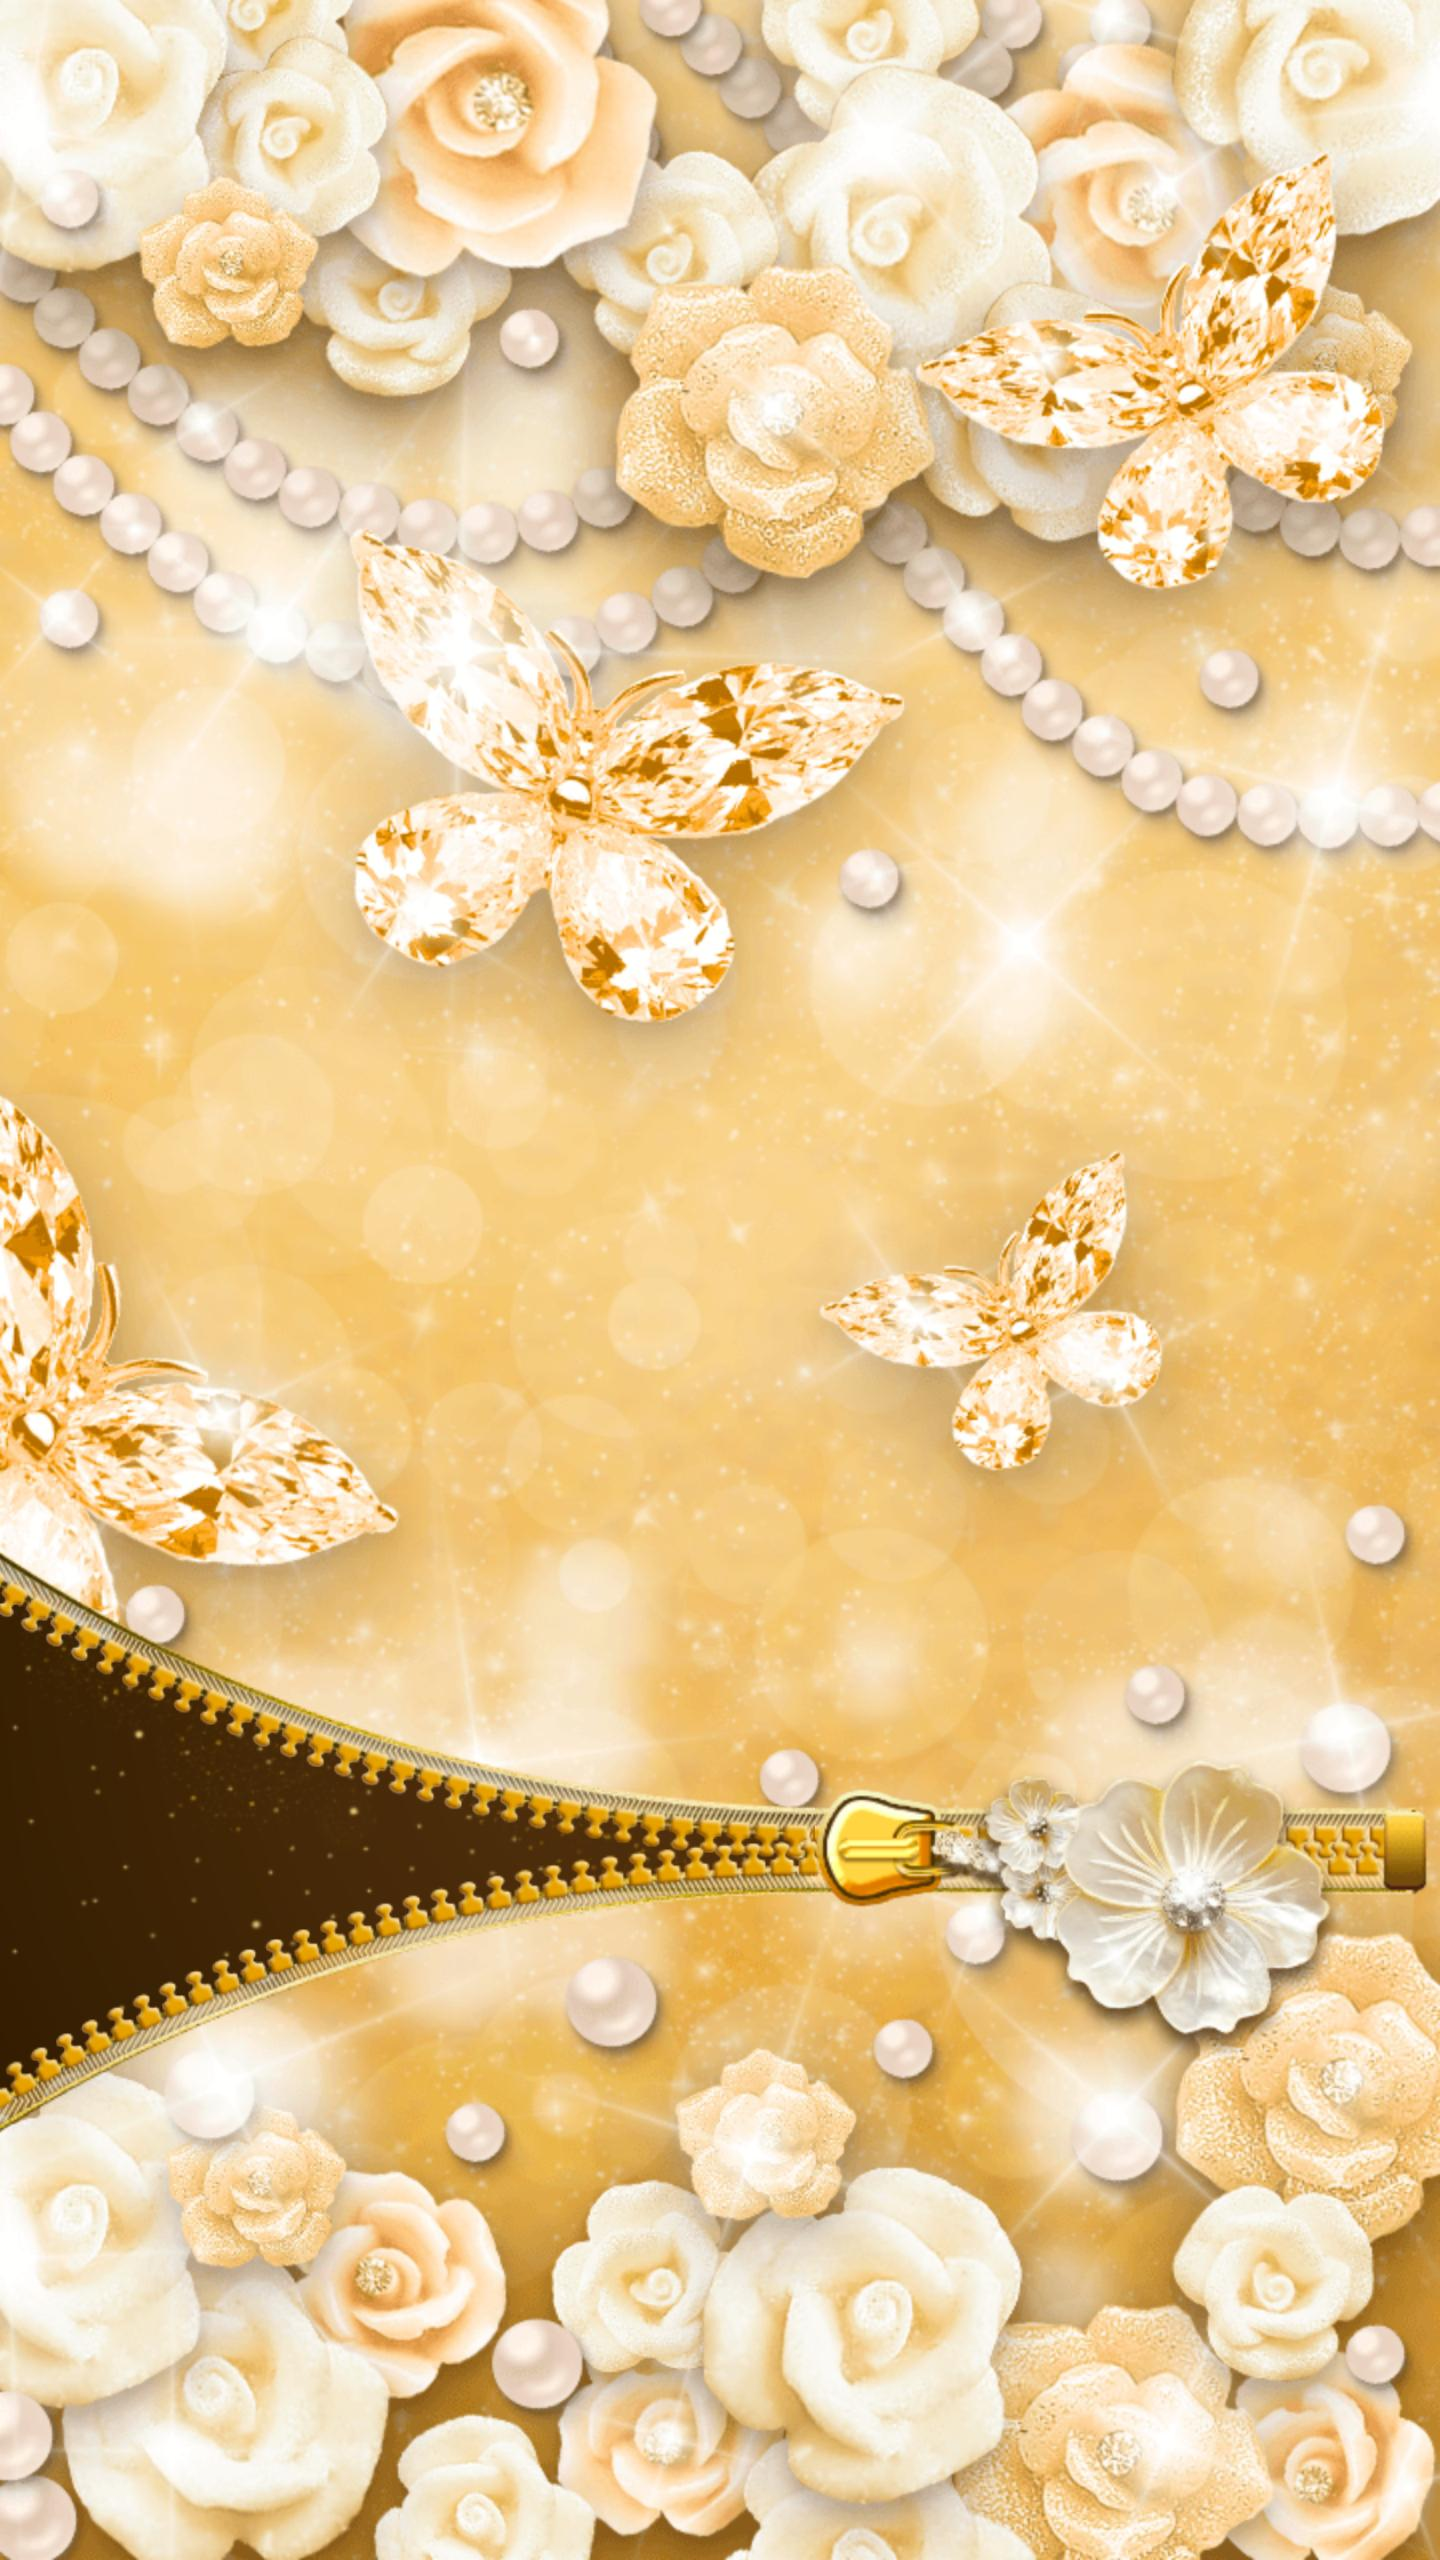 Gold Butterfly Diamond Zipper Lock For Android Apk Download